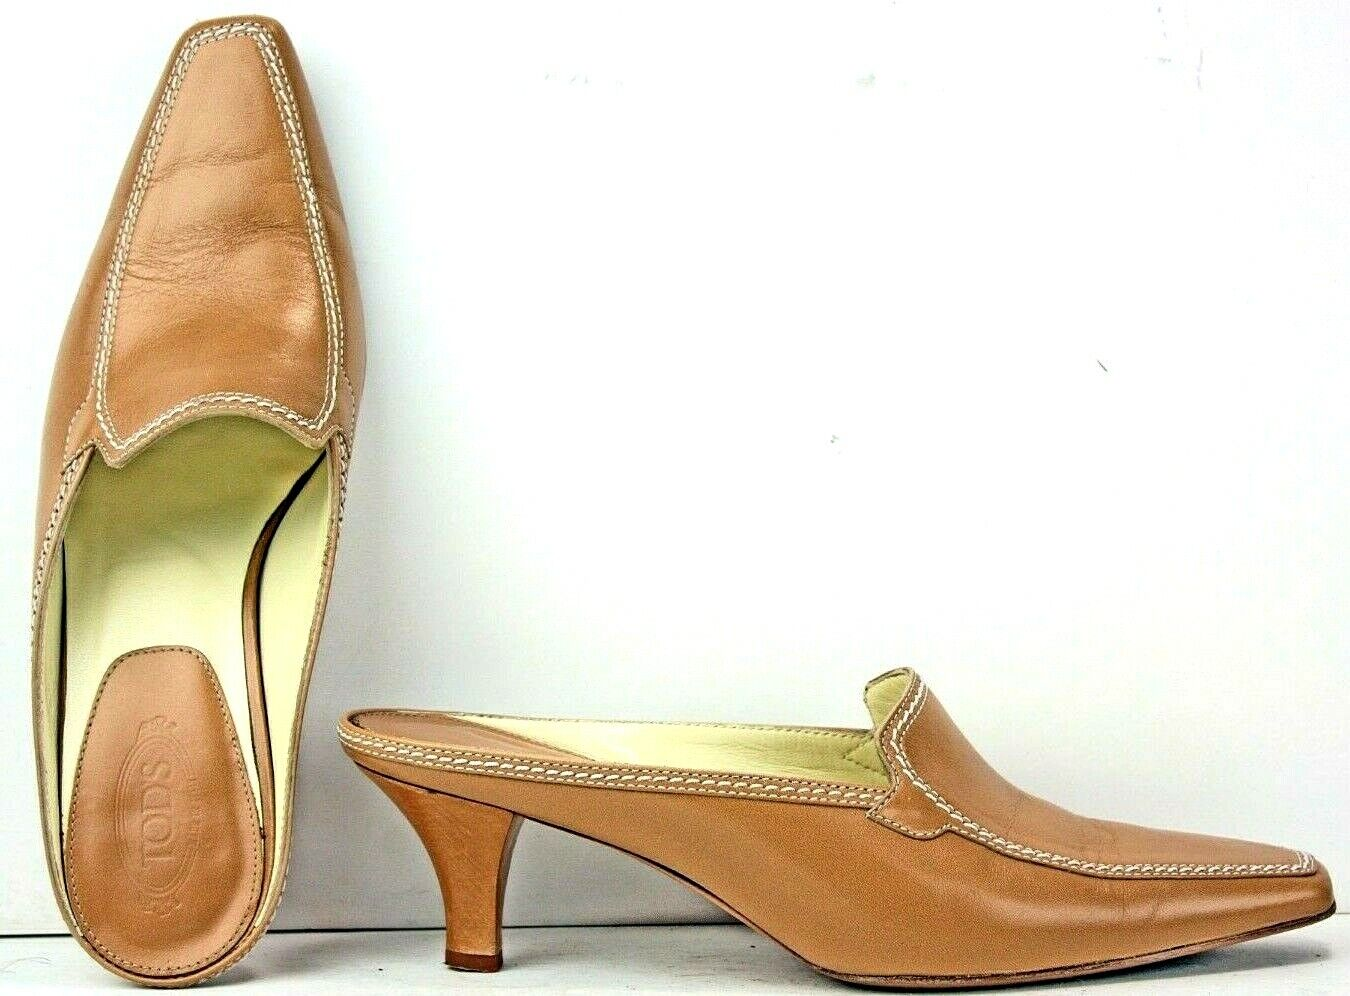 TOD'S donna Mules Dimensione 6 Marroneee Leather Kitten Cone Heels WF13 FW386